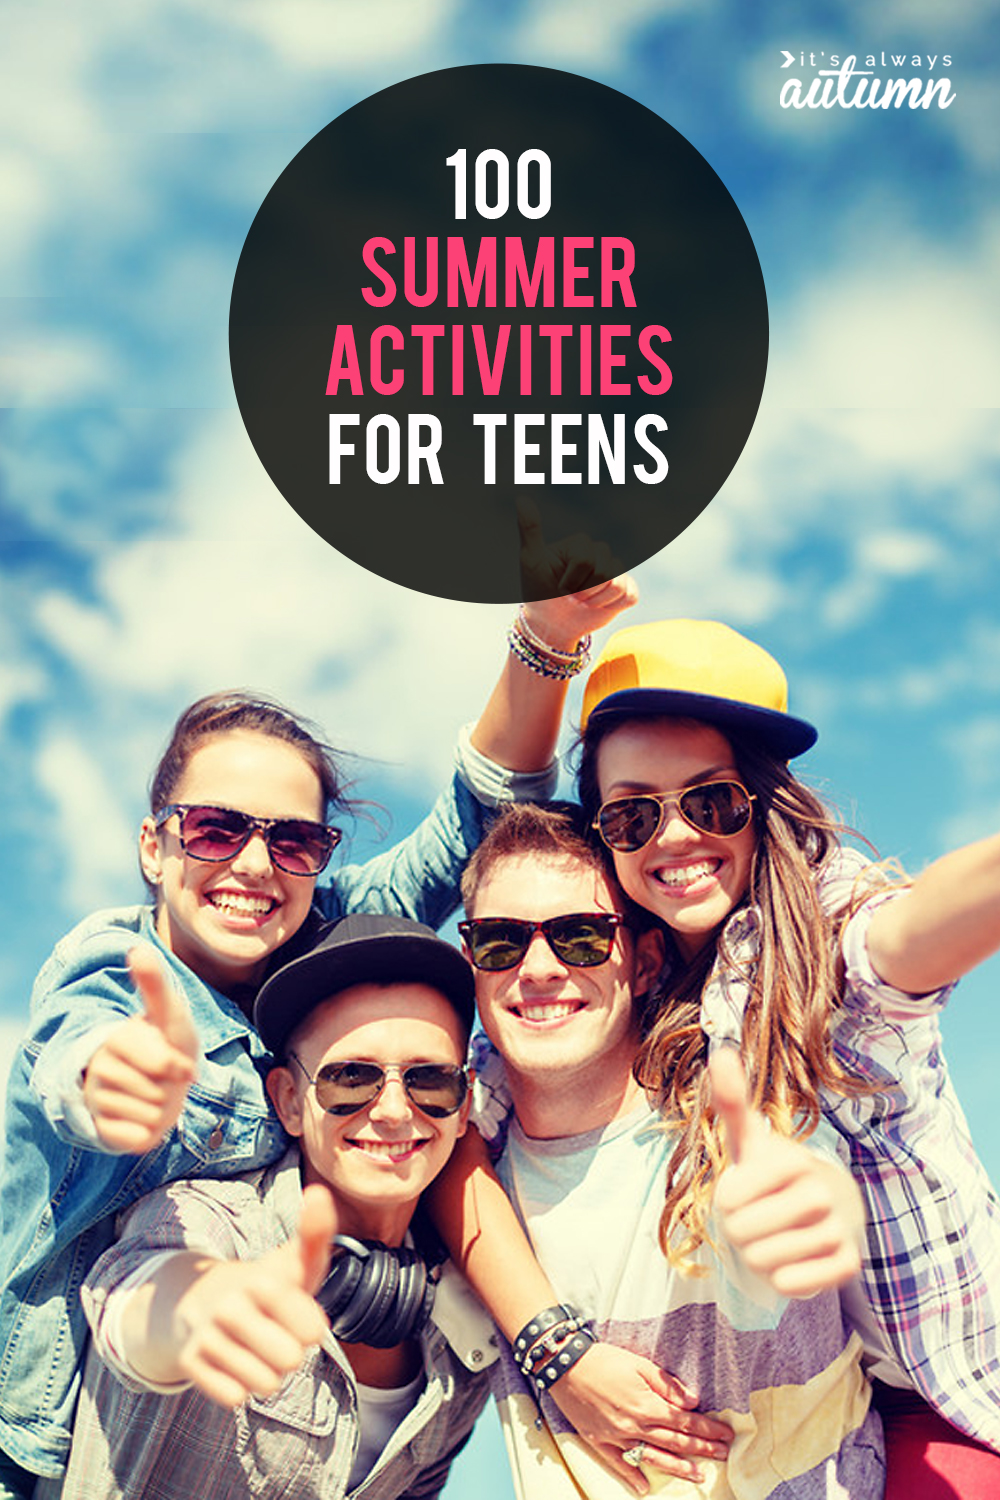 100 summer activities for teens | Fun ideas for teens and tweens to stay busy and have a great summer.